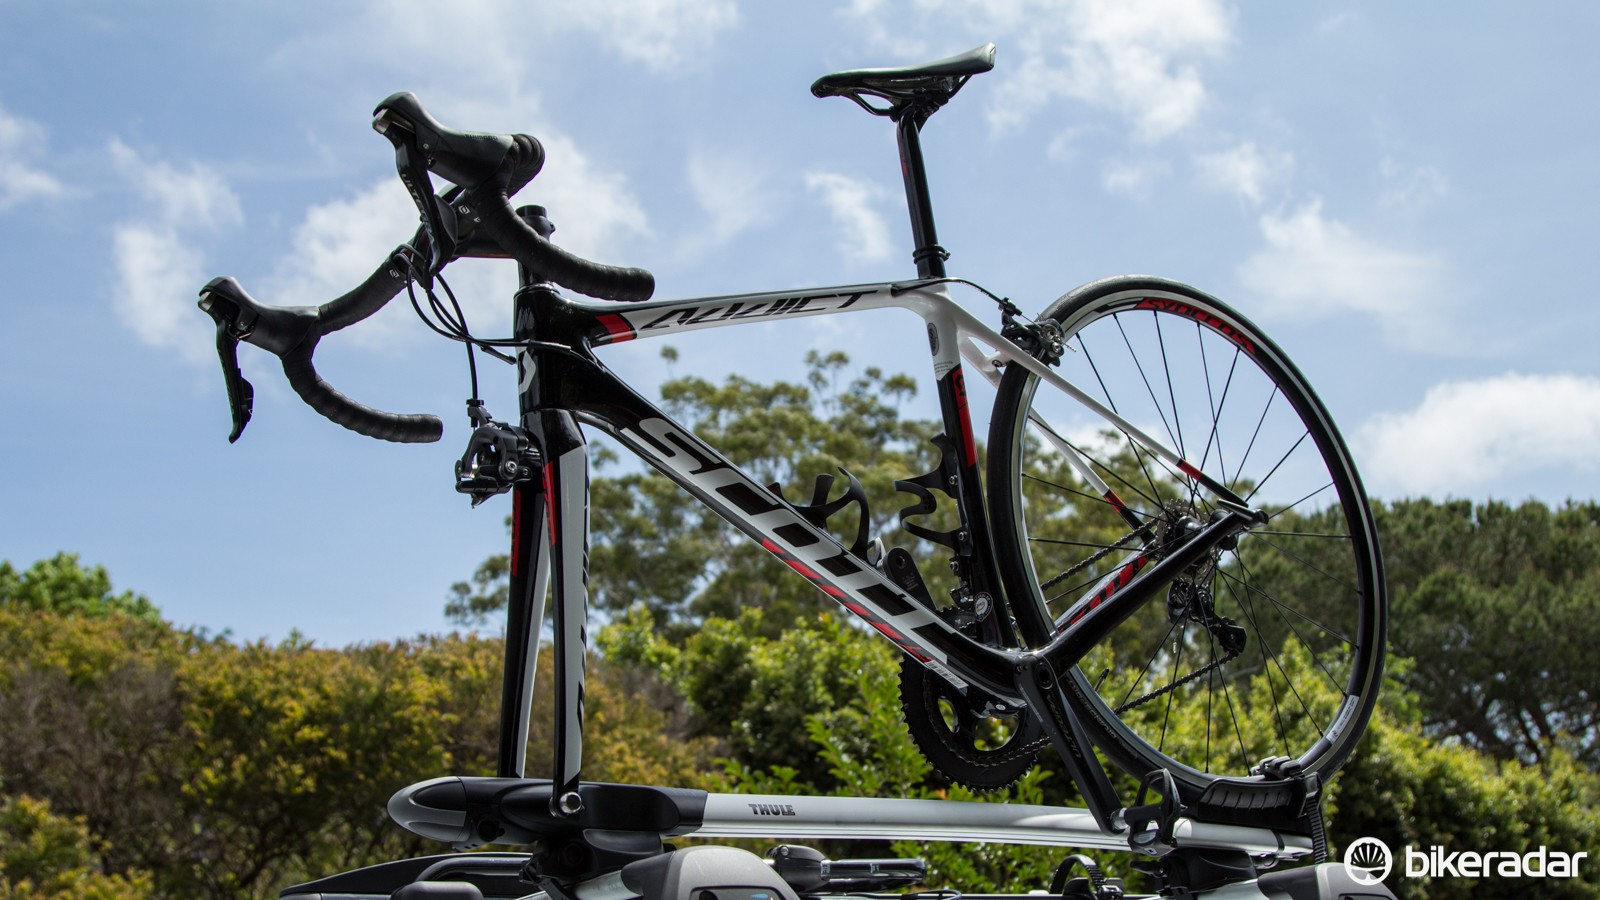 Come and chat about bike carriers with us – which are the best?